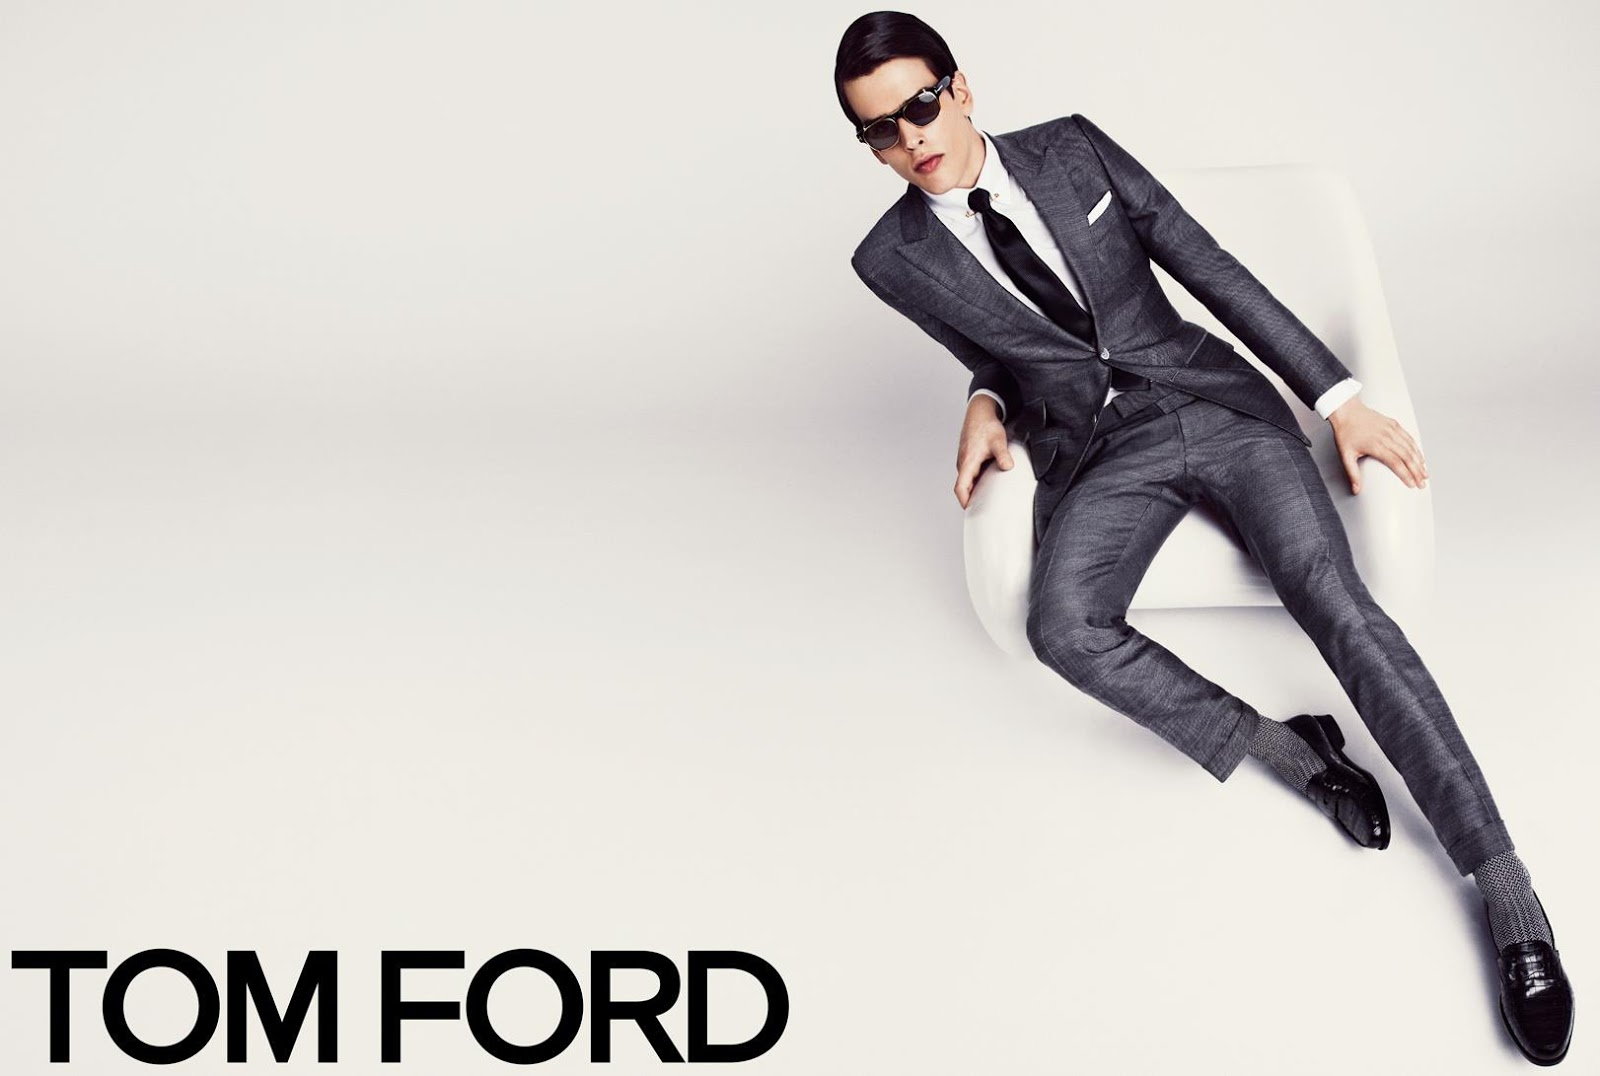 Karlina-Caune-Simon-Van-Meervenne-for-Tom-Ford-SS-2013-008.jpg